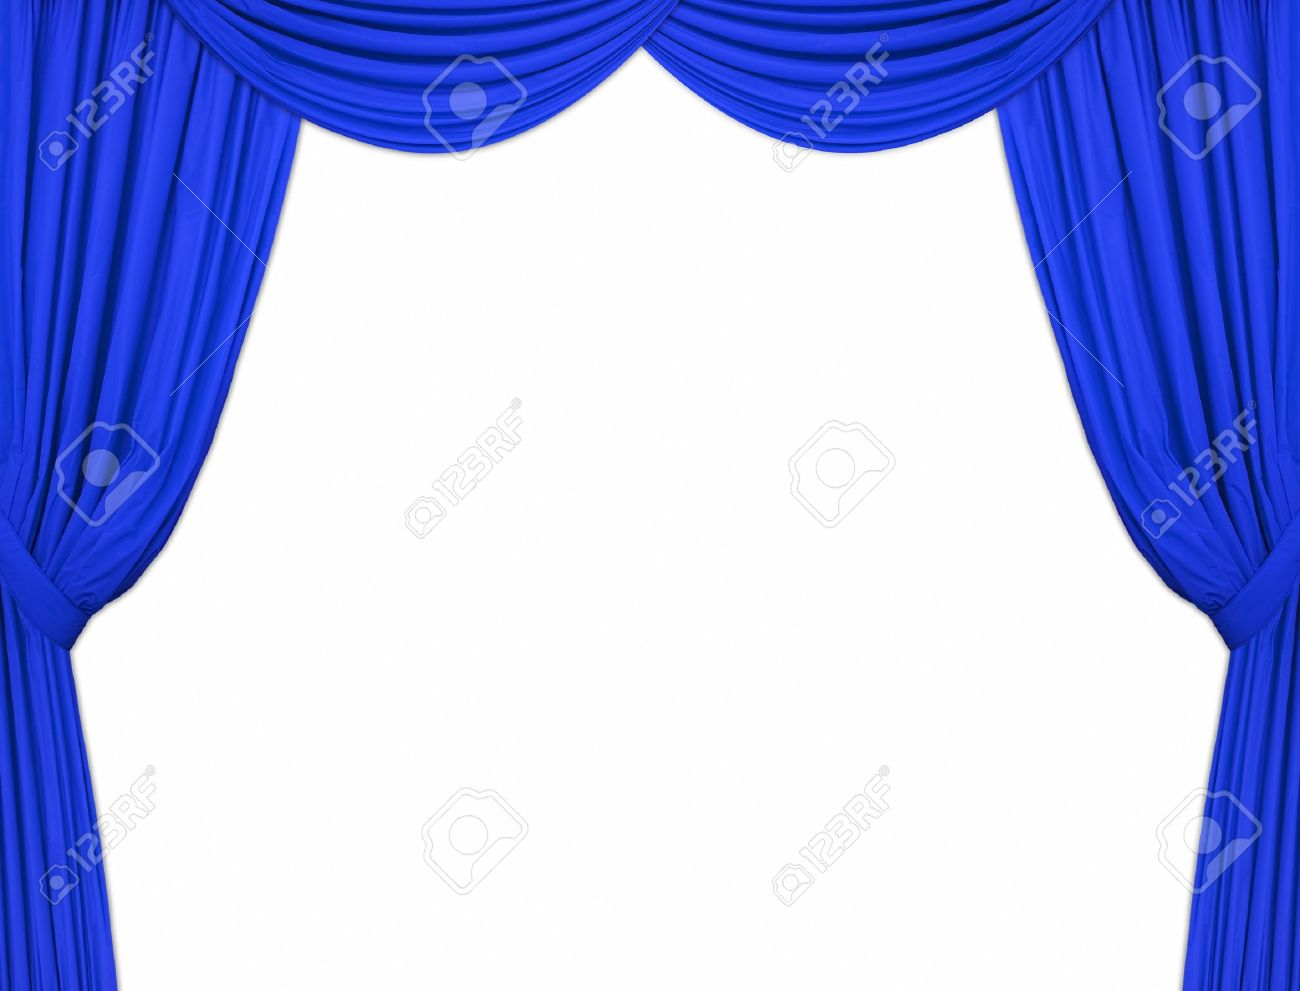 Cobalt blue curtains - Large Blue Theatre Curtains On A White Background Stock Photo 3679648